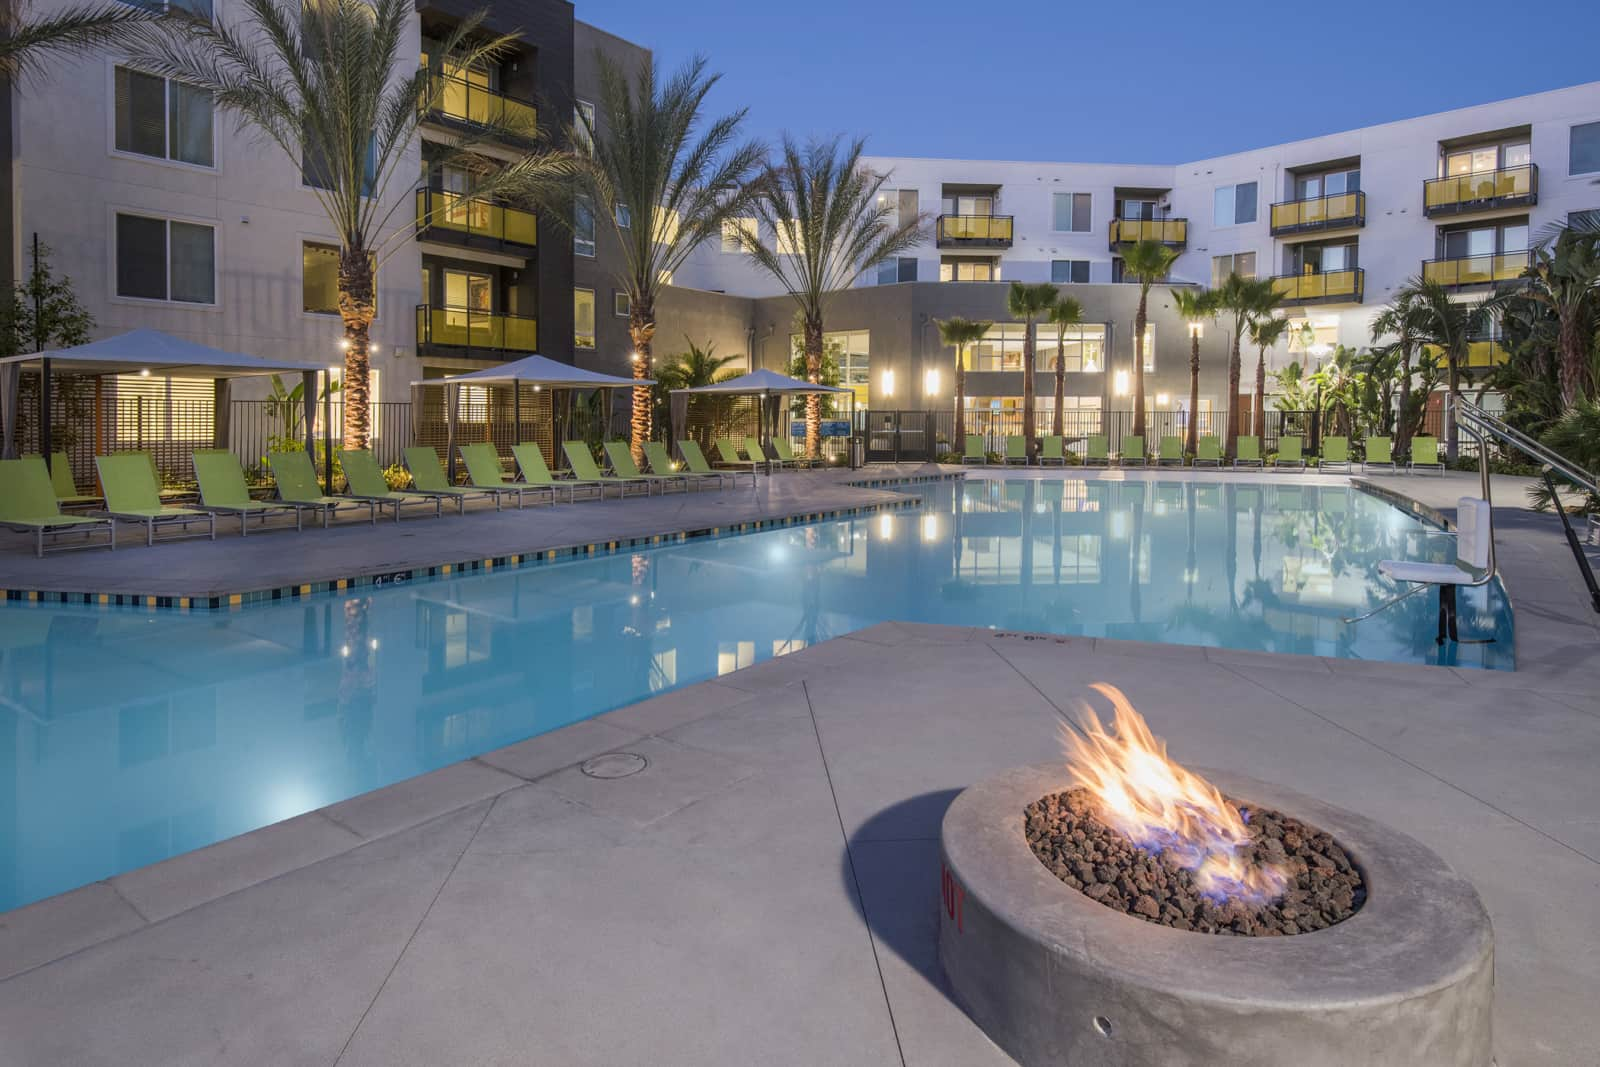 Exterior of courtyard pool at night with chairs, umbrellas, palm trees and a fire pit in the foreground.